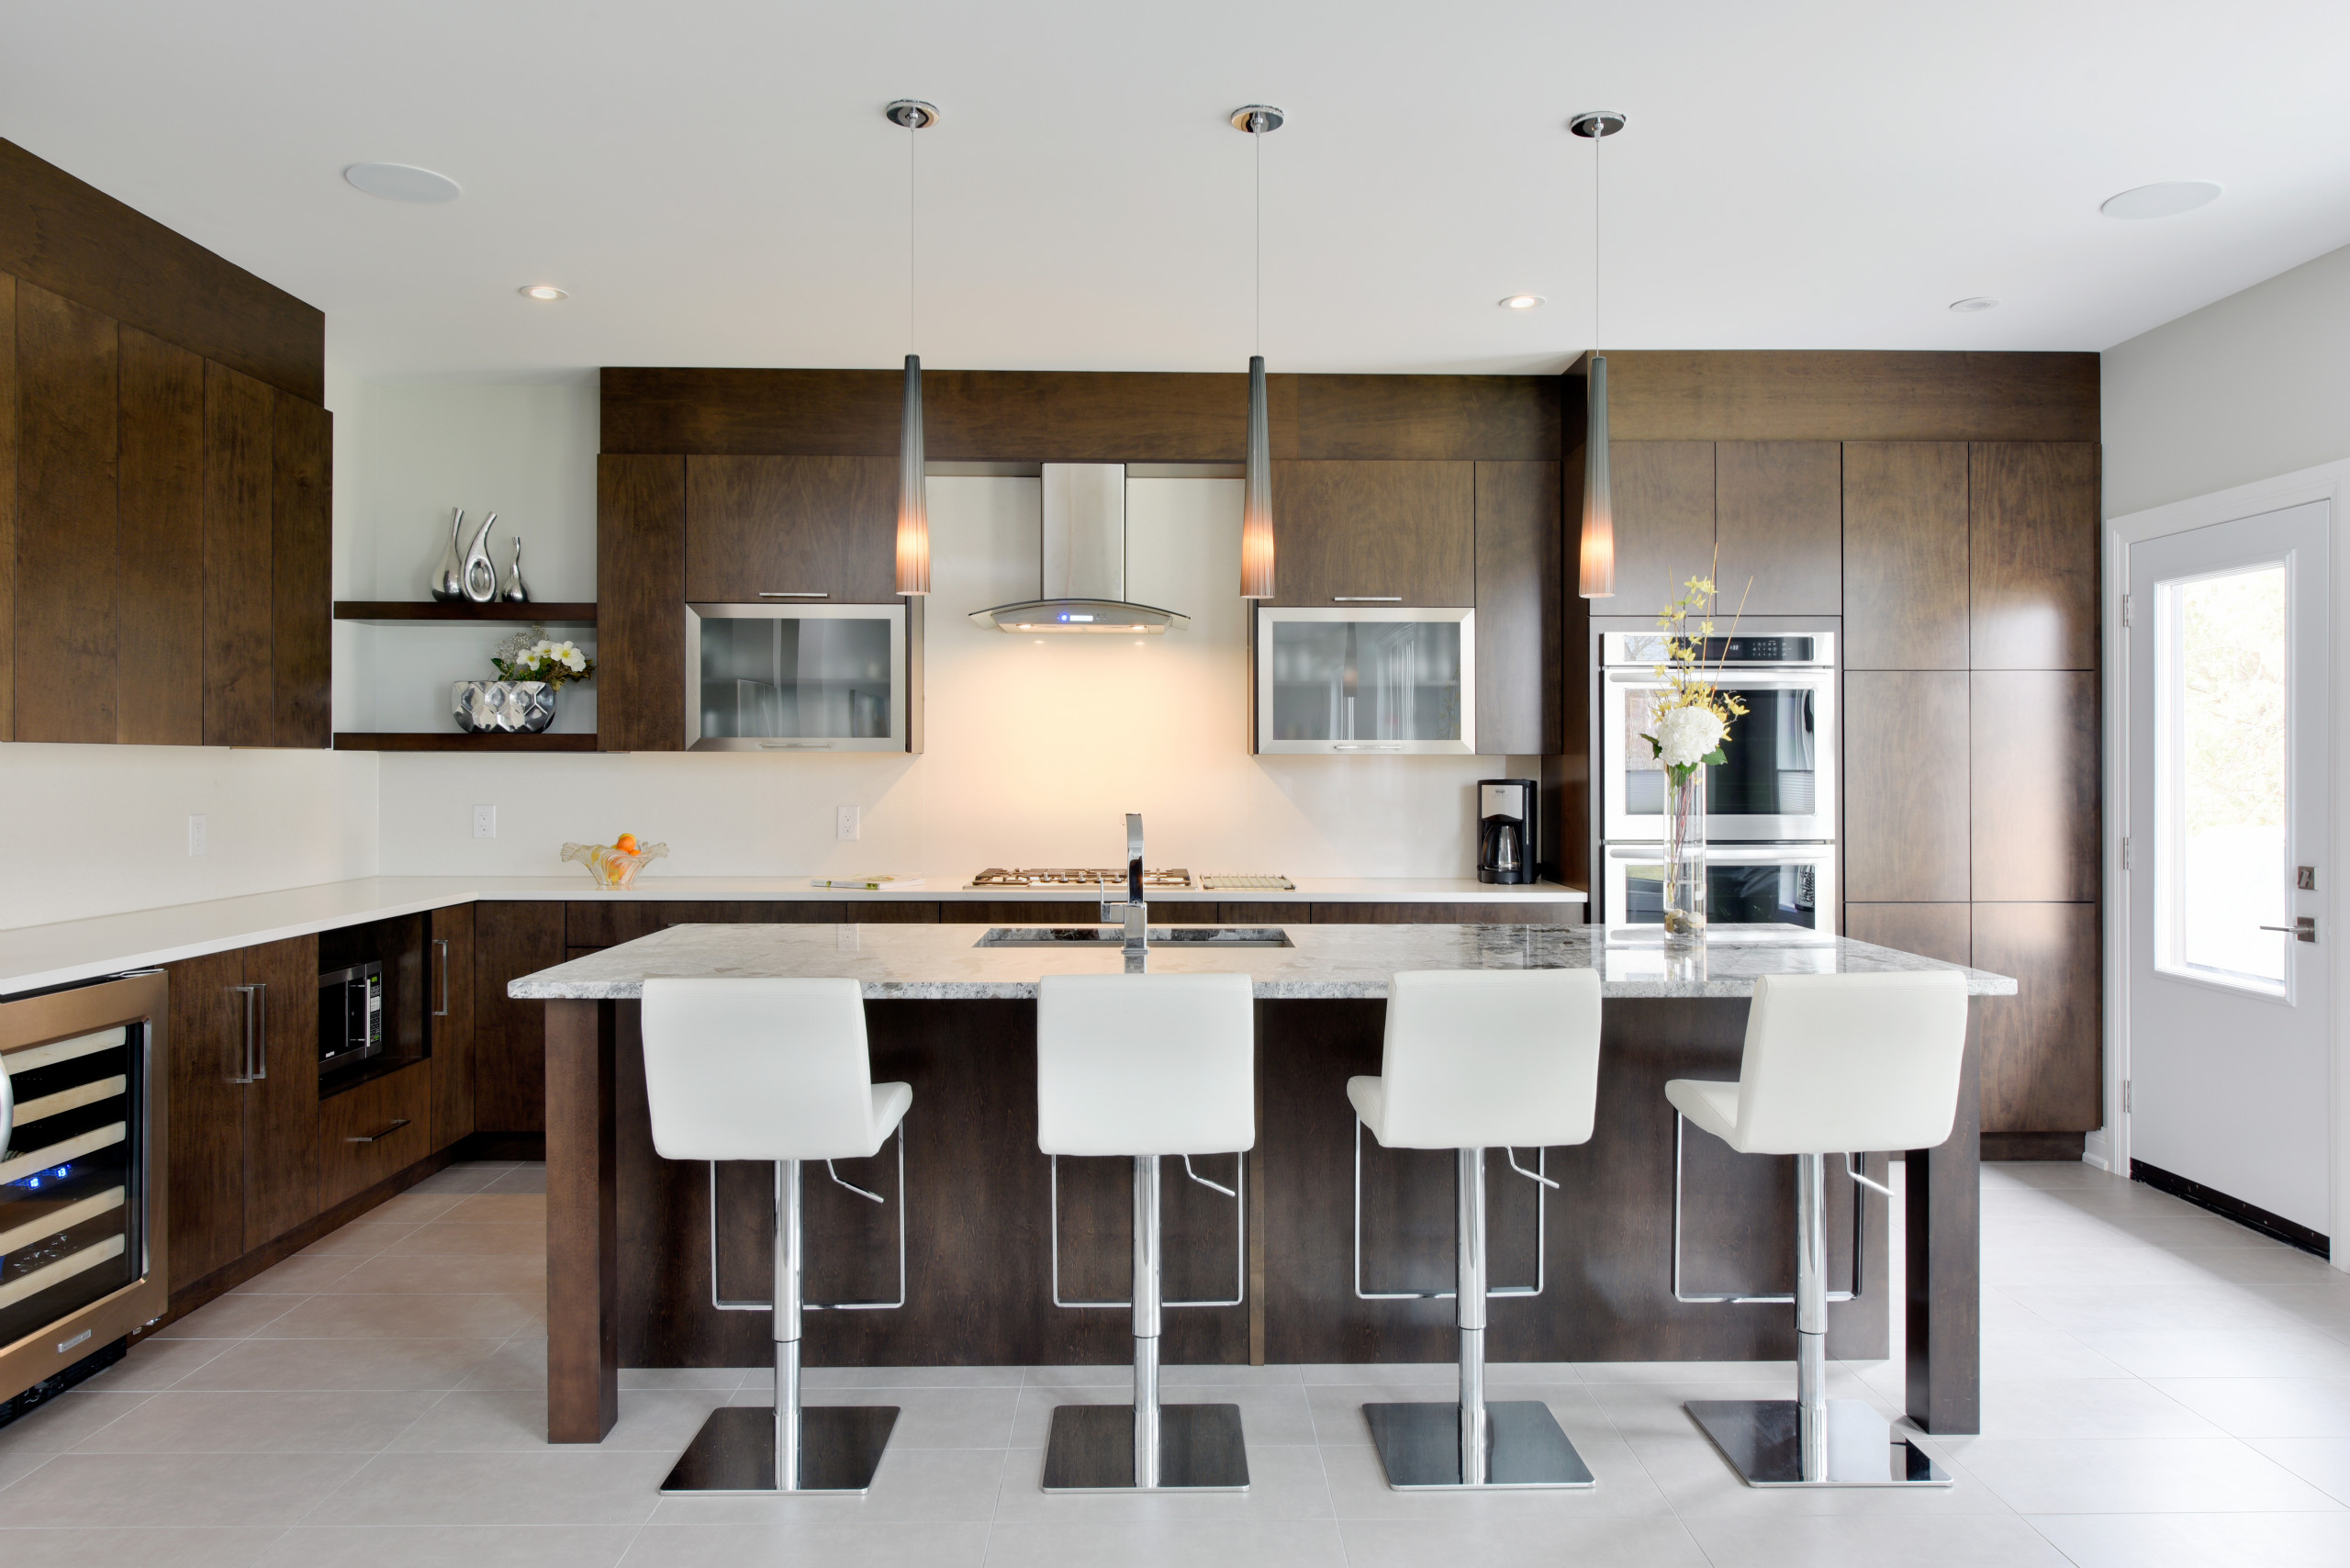 Glass cabinets with stainless steel frames on either side of the range